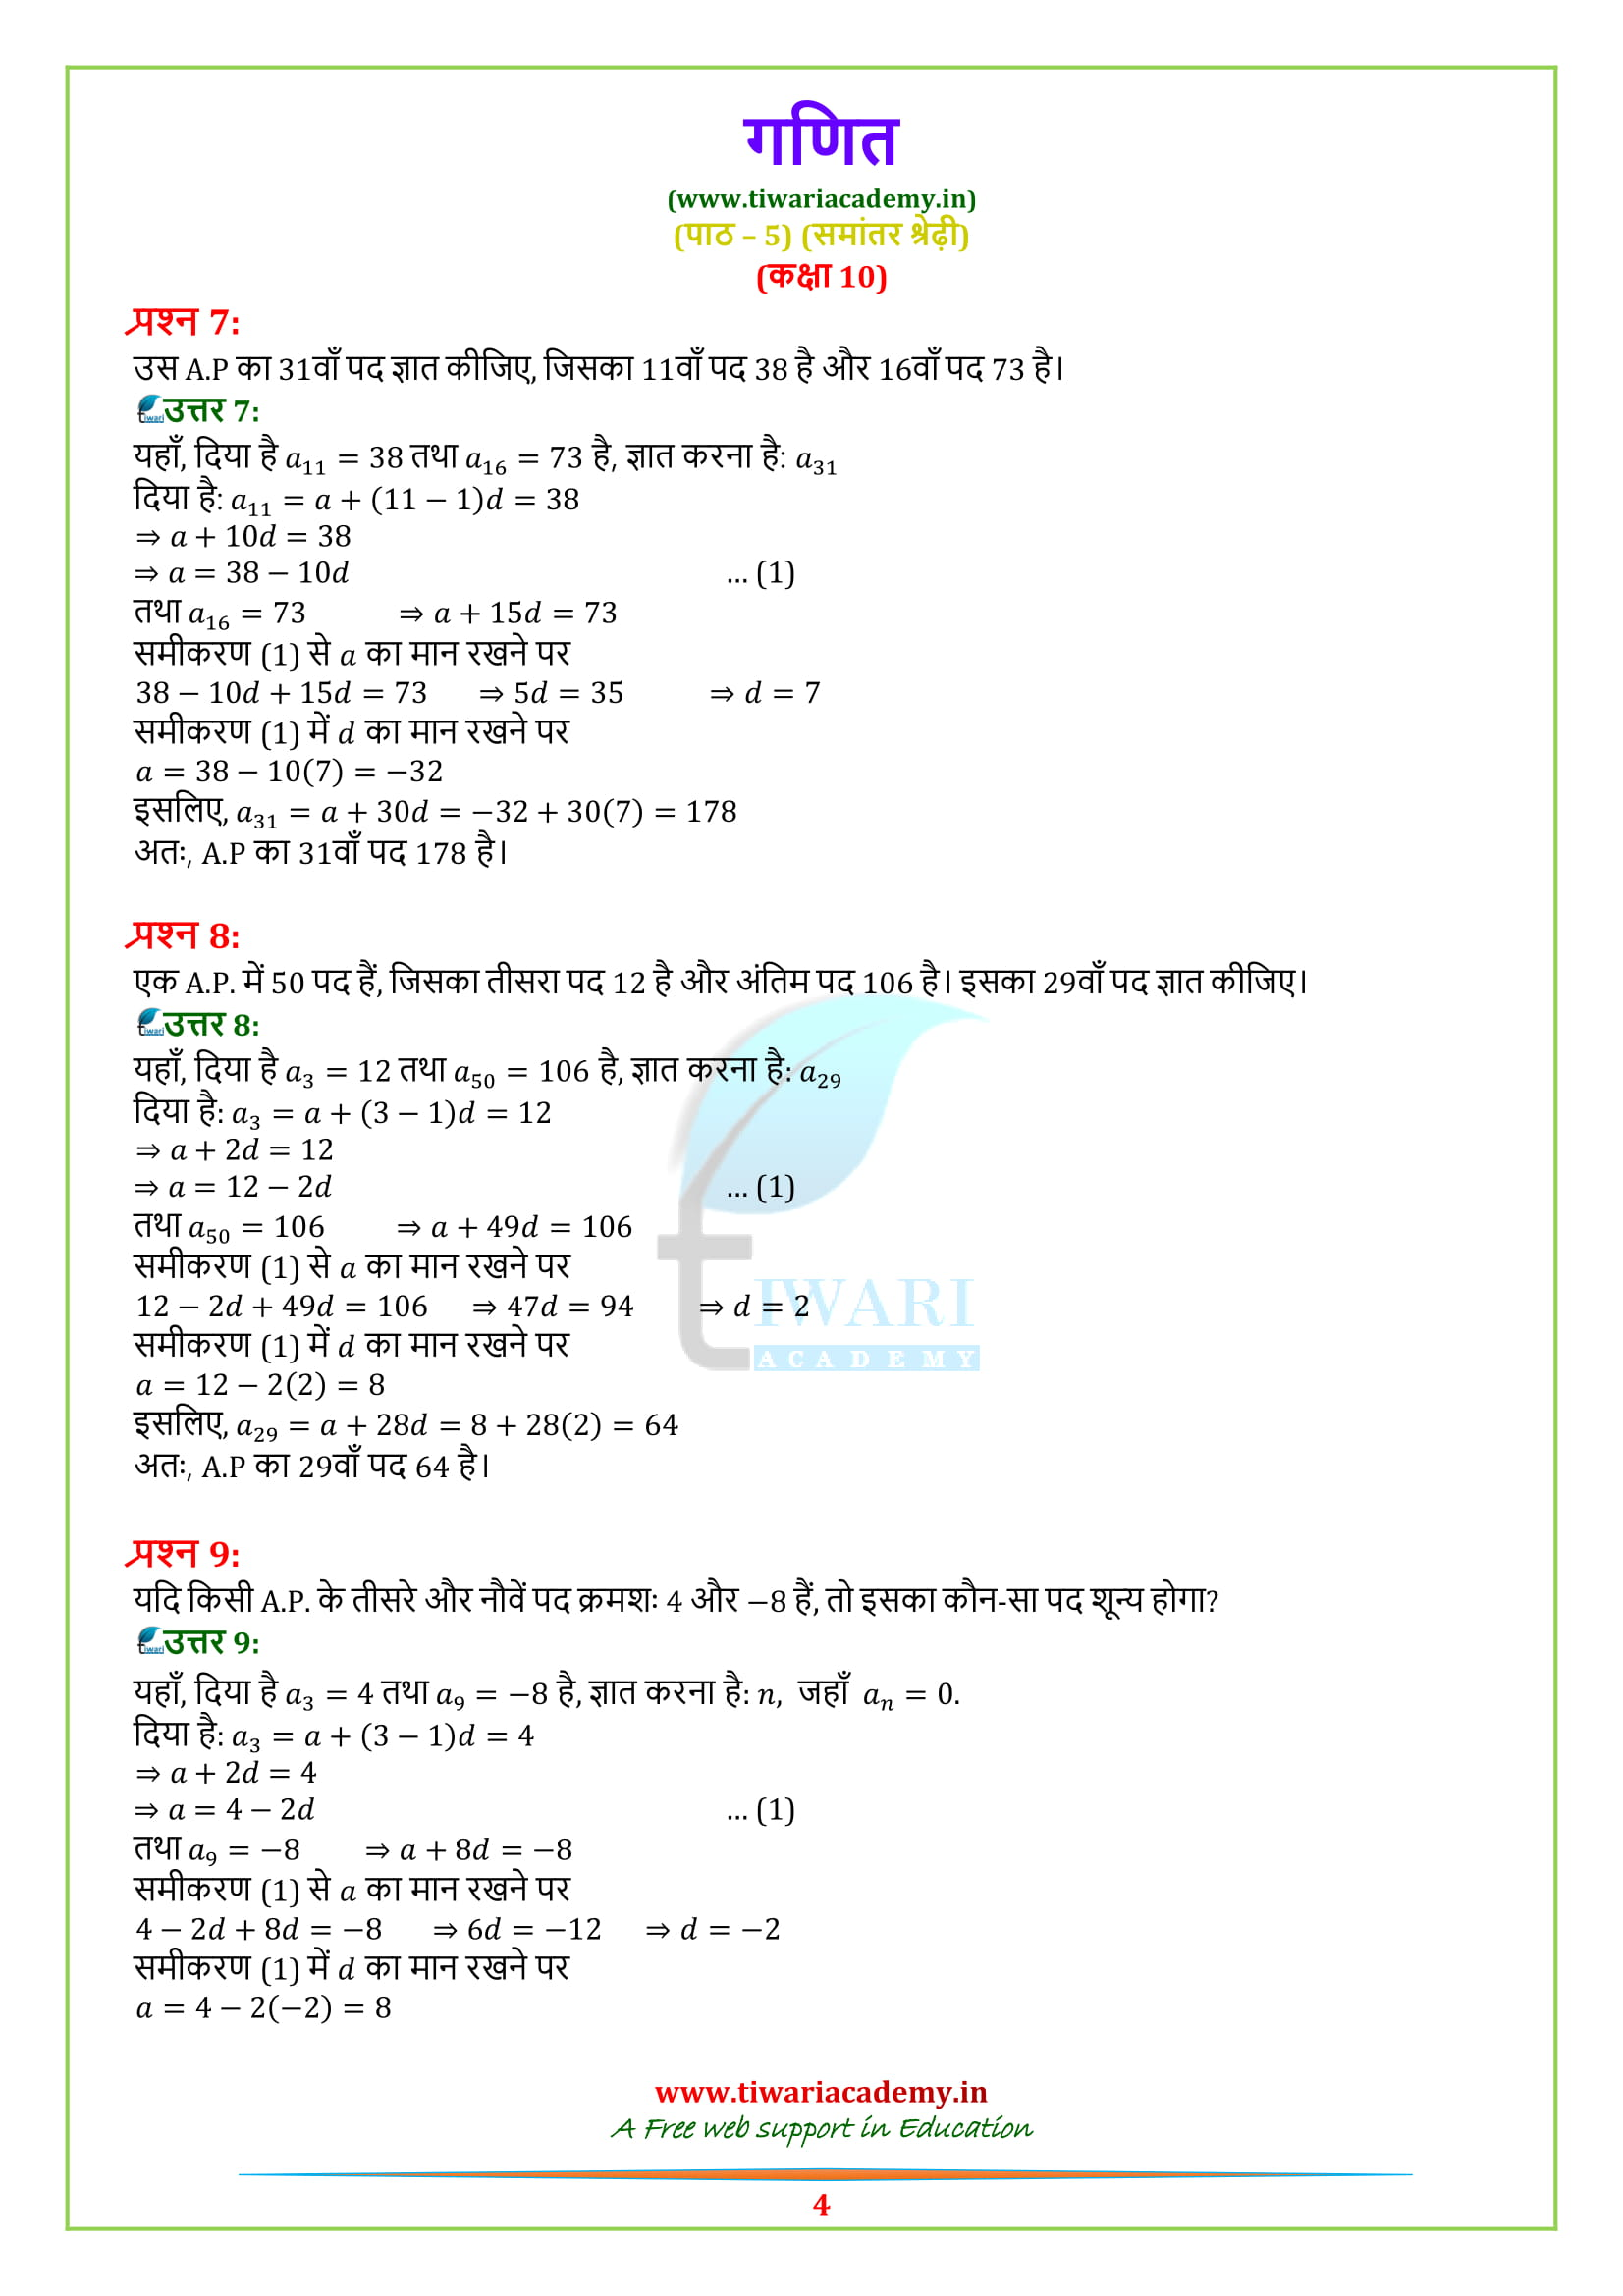 NCERT Solutions for Class 10 Maths exercise 5.2 updated for 2018-19 up board